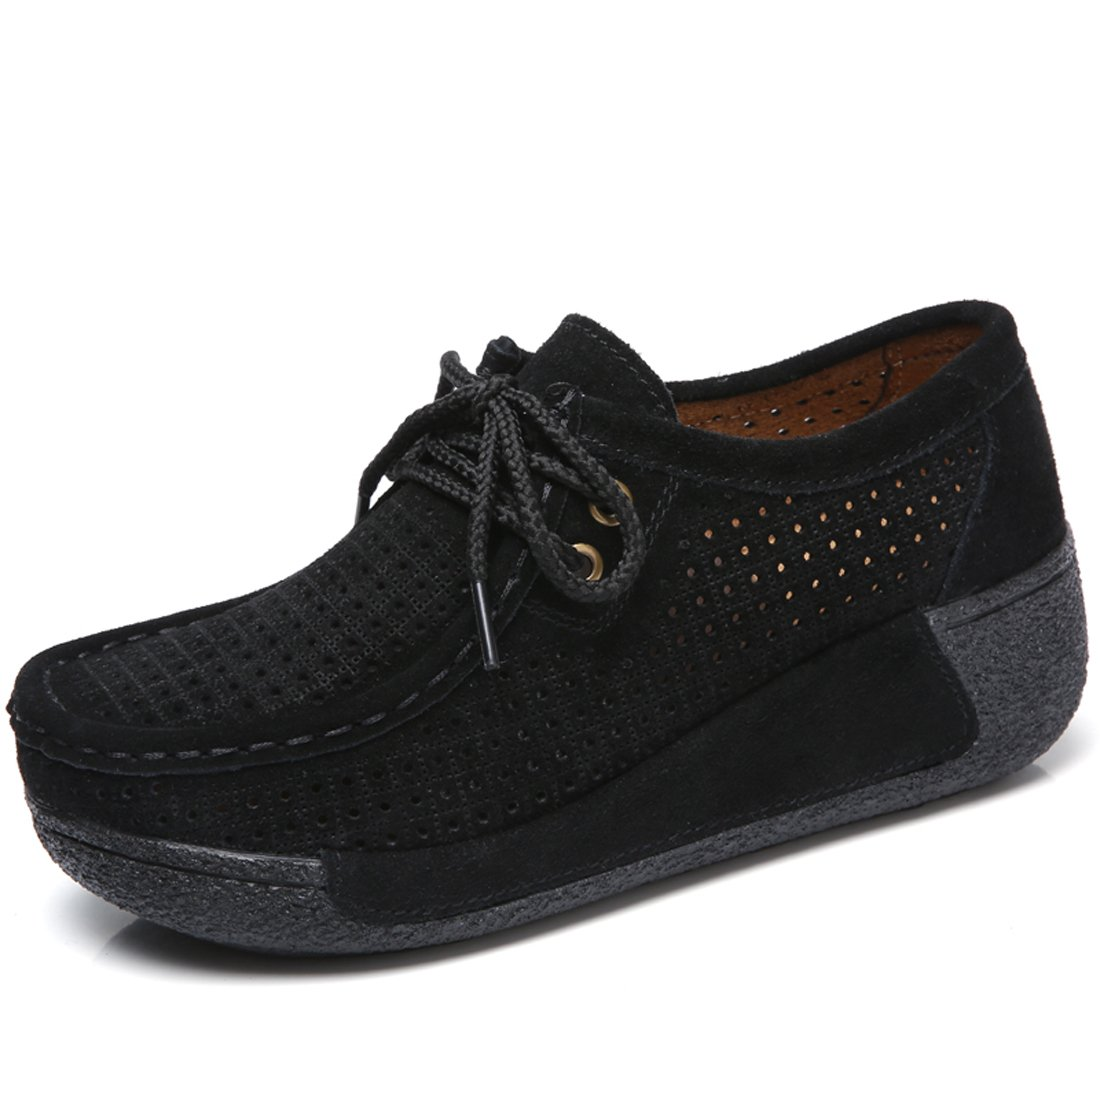 Z.SUO Chaussures Mocassins B07GP1NYJY Femmes Suède Casuel Confort Loafers Chaussures Loafers Noir.1 cda9802 - shopssong.space